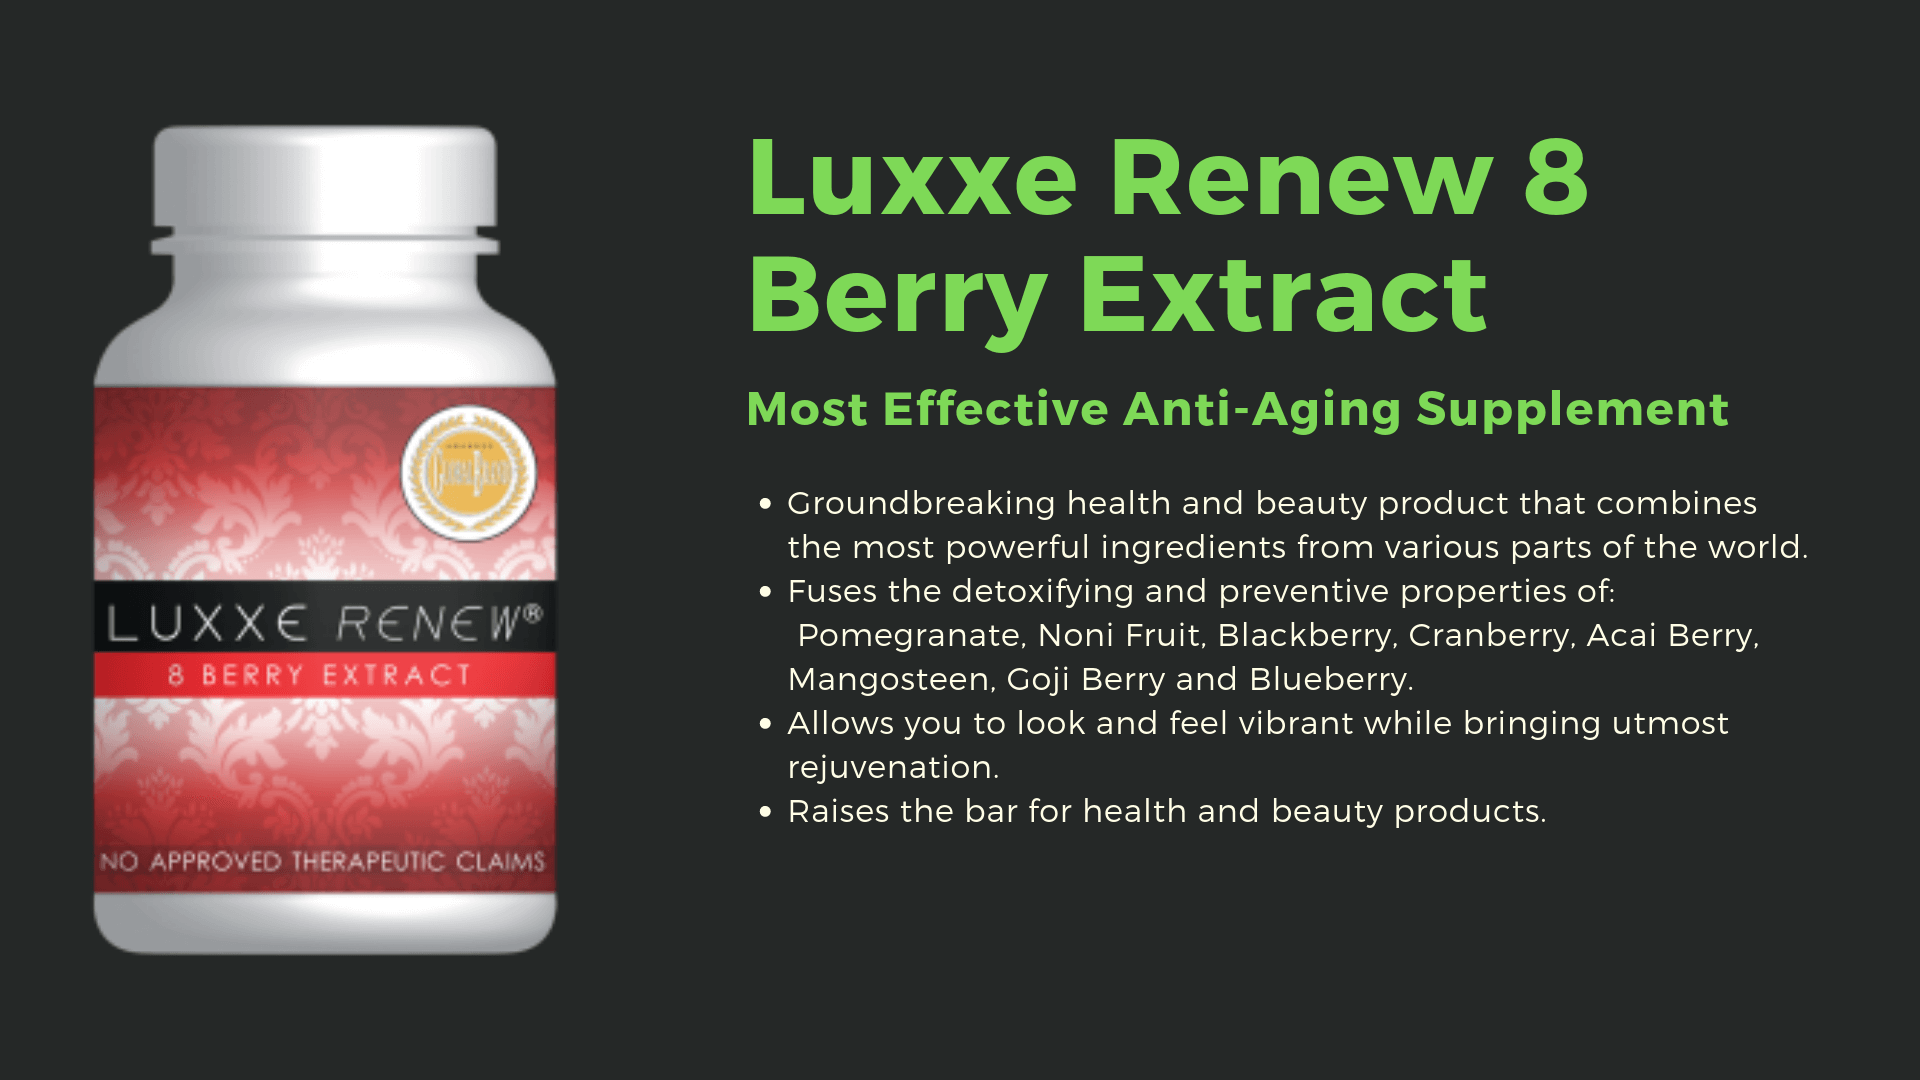 luxxe renew 8 berry extract image details